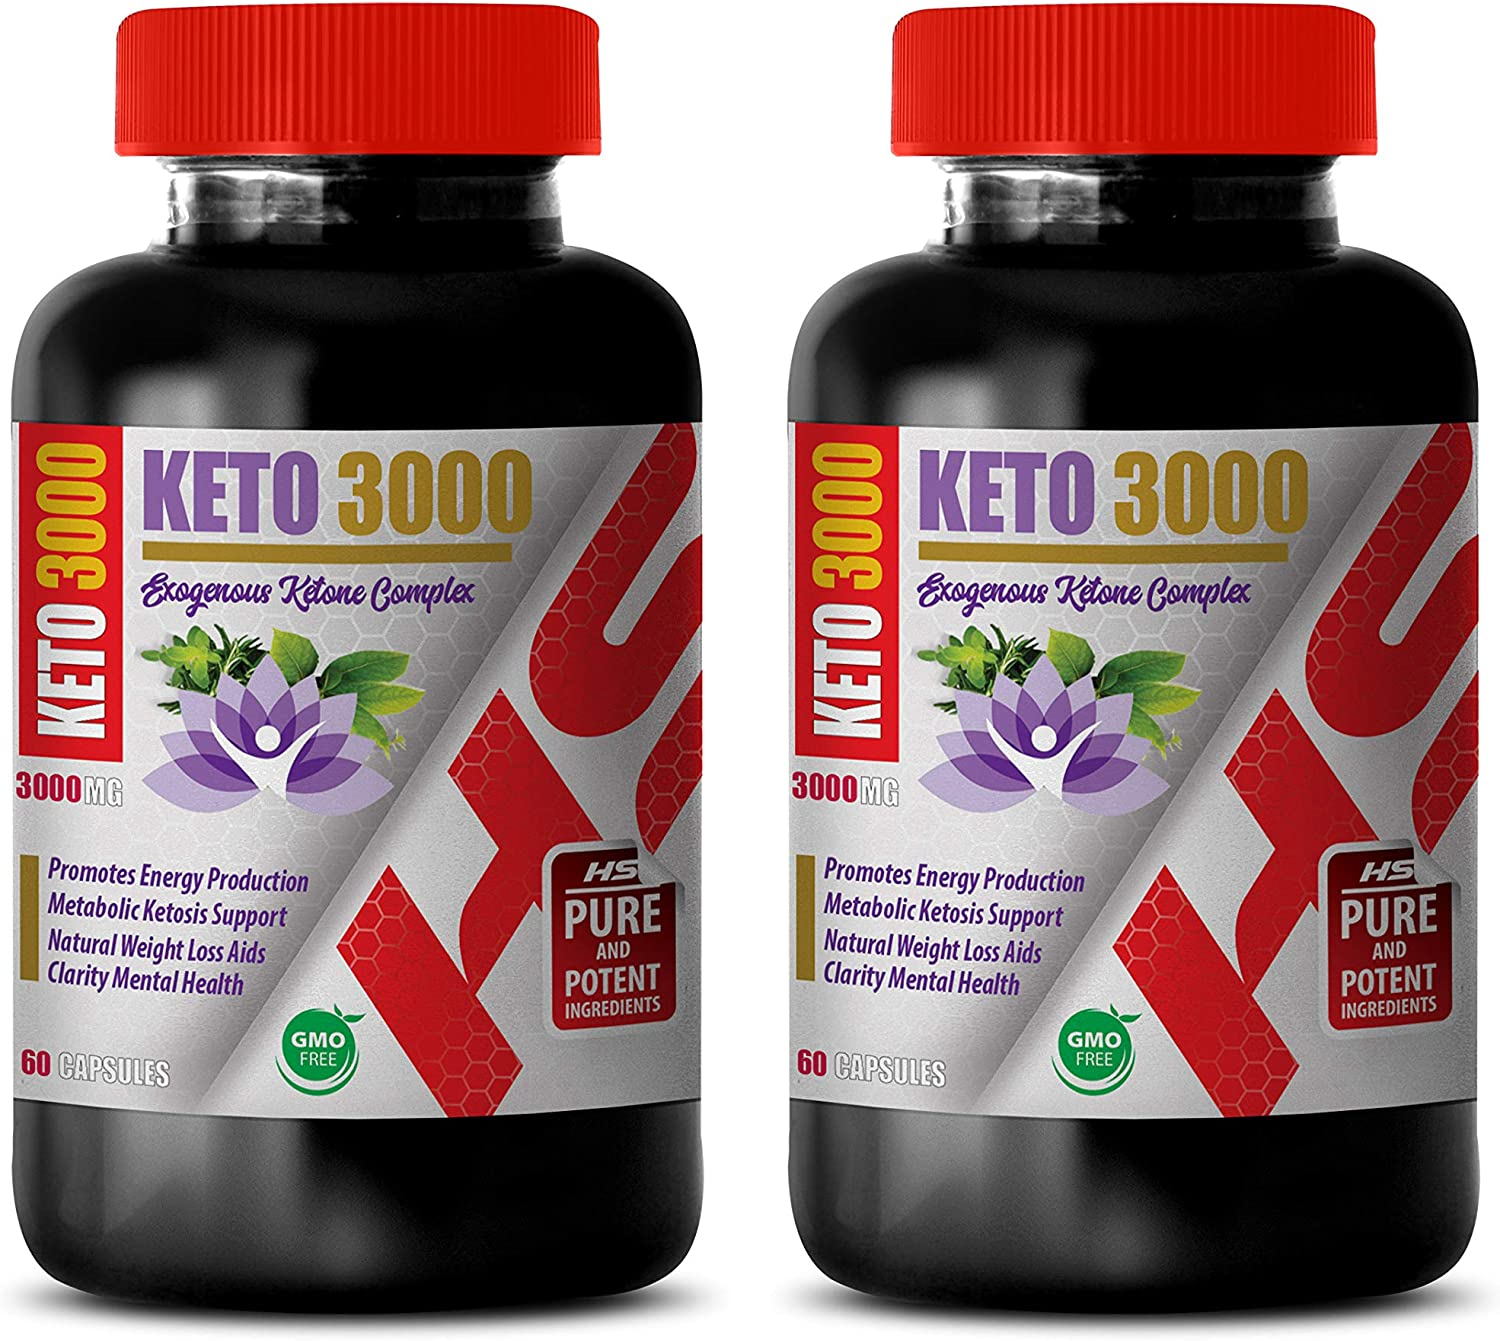 Weight Loss Keto Supplements Ranking TOP18 - Max 70% OFF 3 EXOGENOUS Ketone Complex